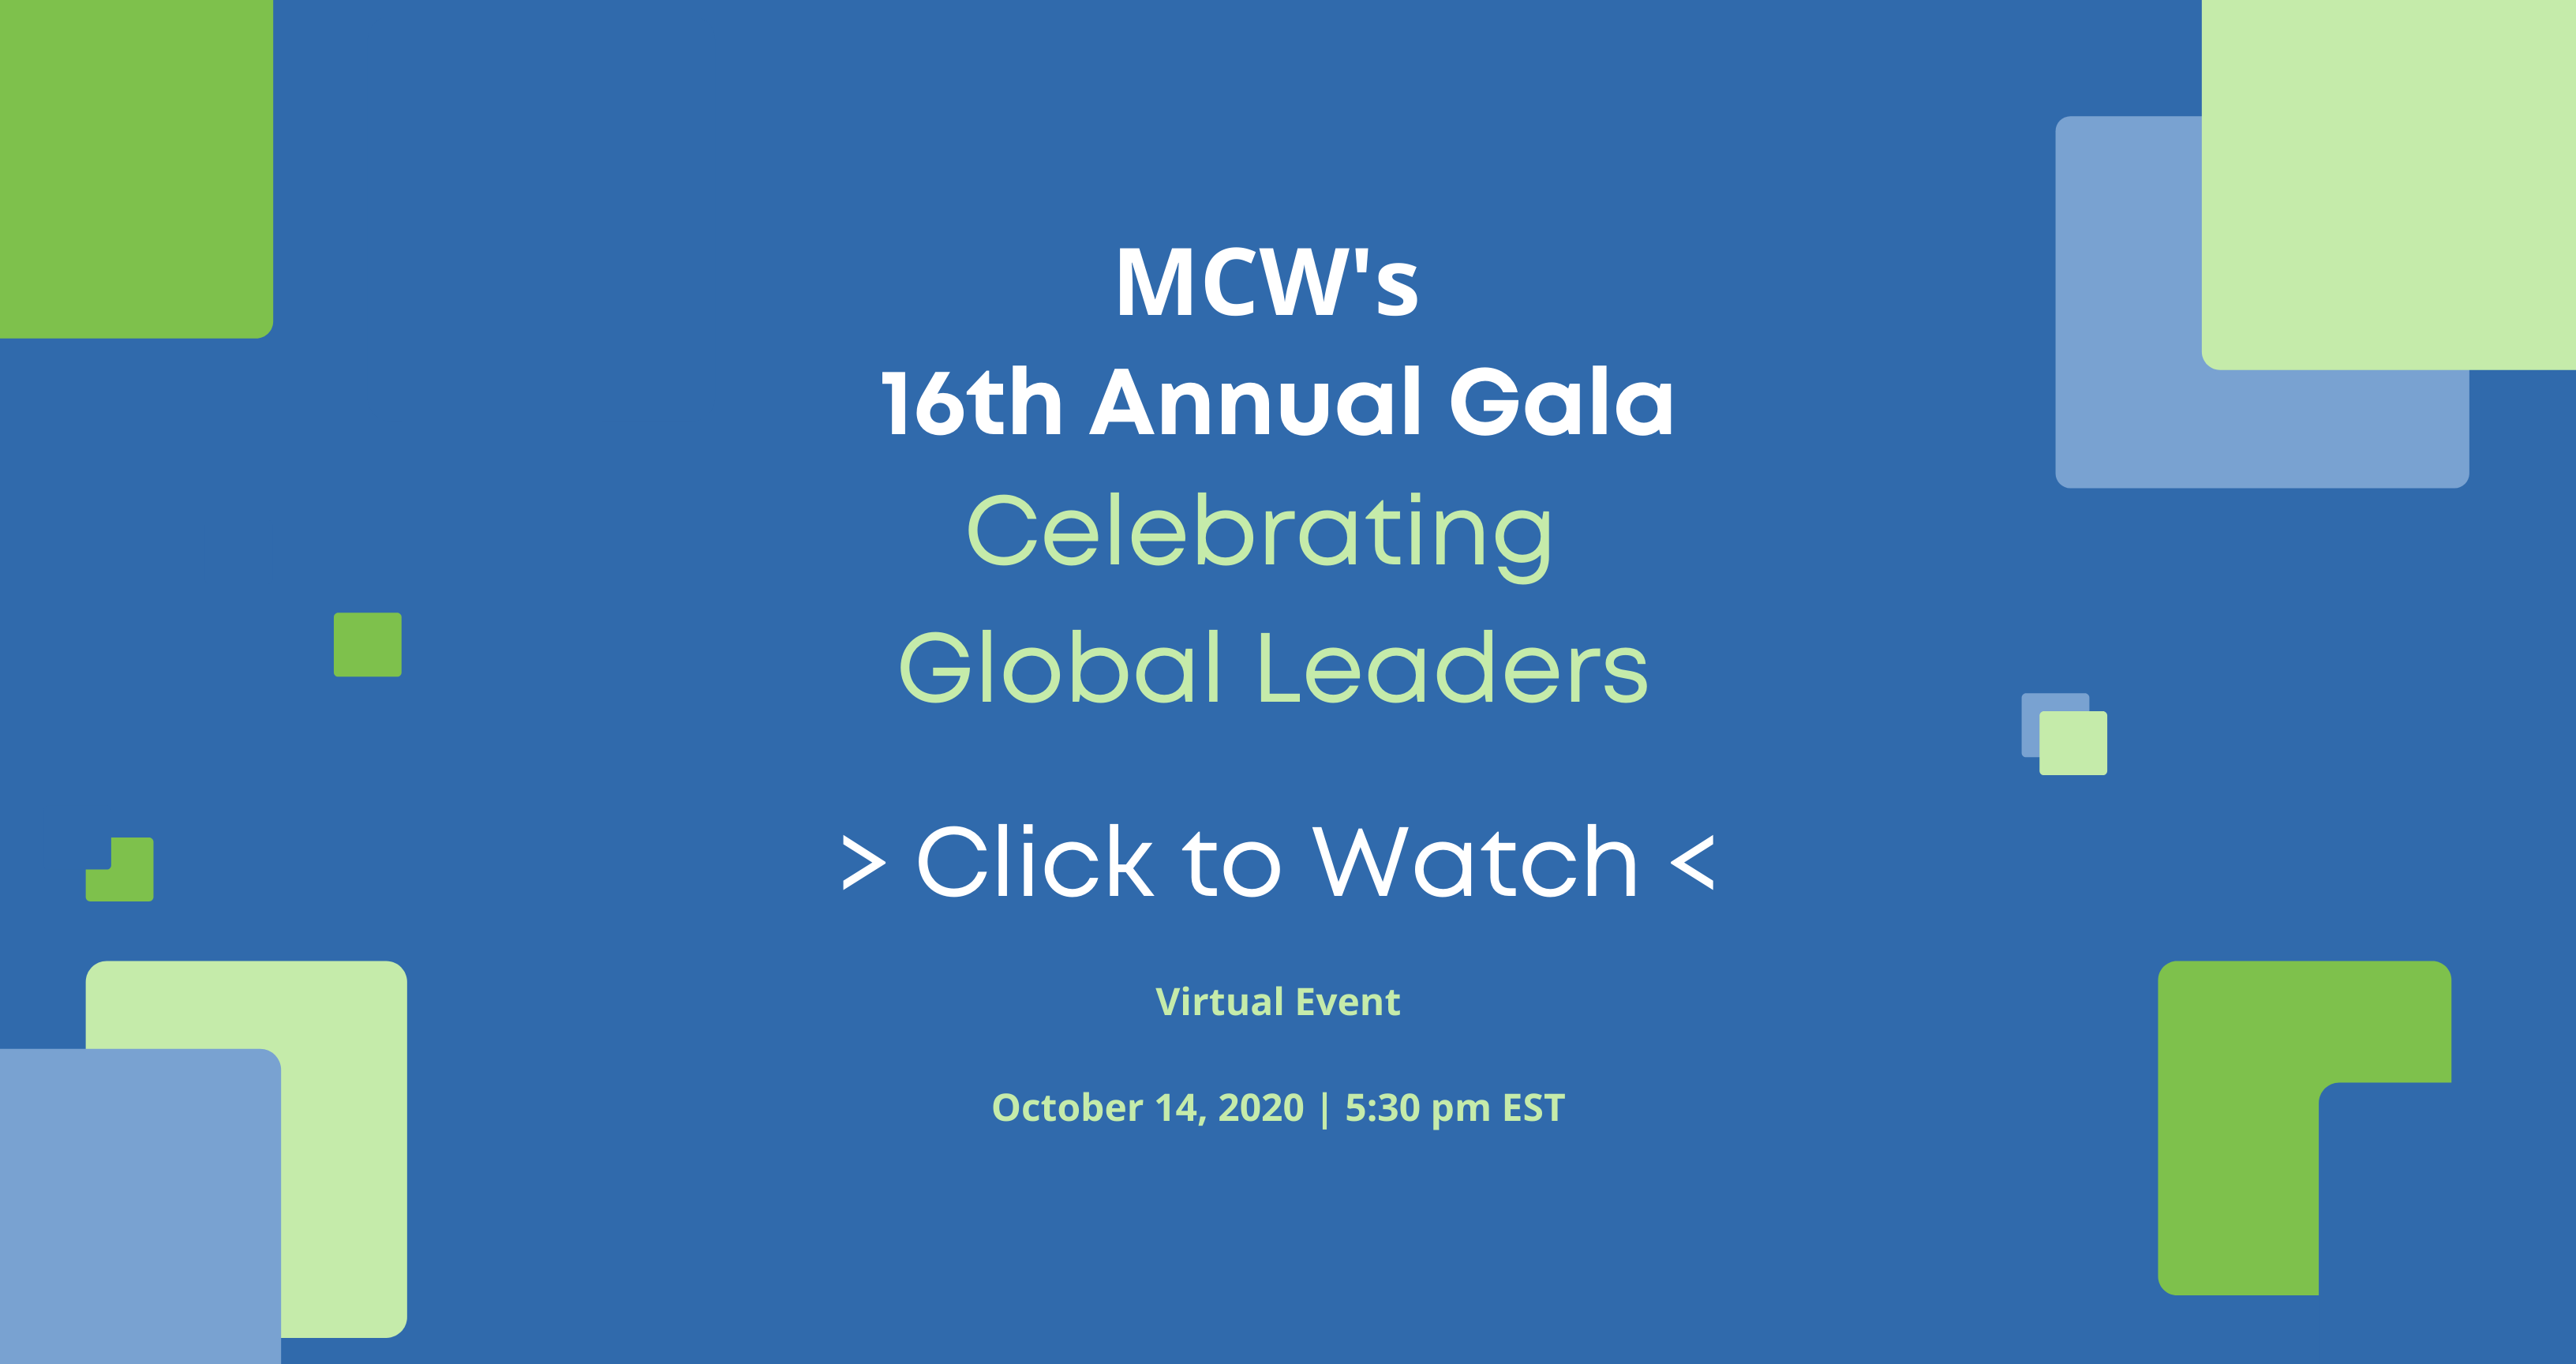 Watch MCW's 16th Annual Gala